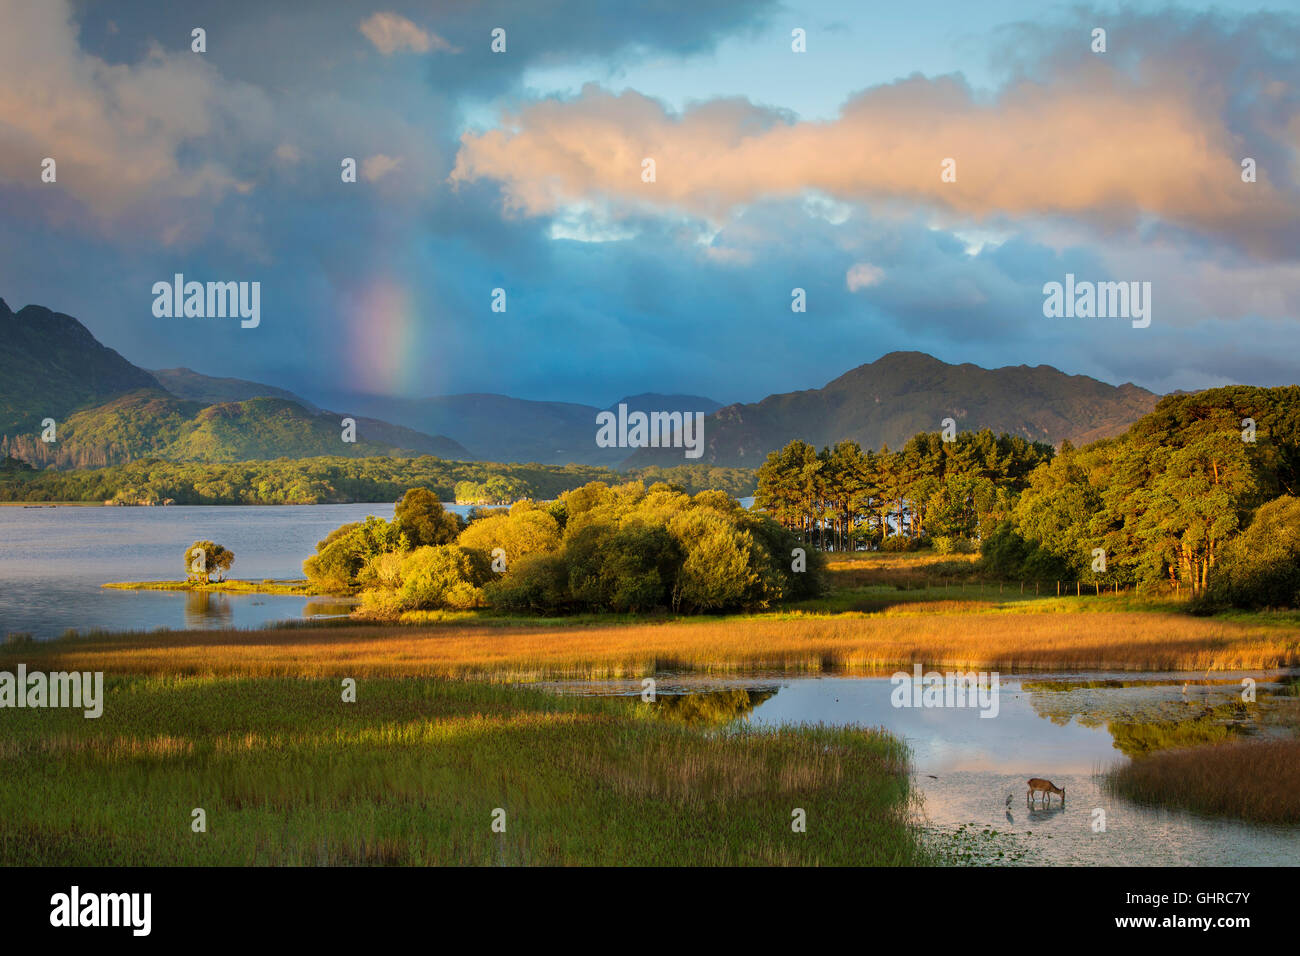 Dawn view over Lough Lean, Killarney National Park, County Kerry, Republic of Ireland - Stock Image